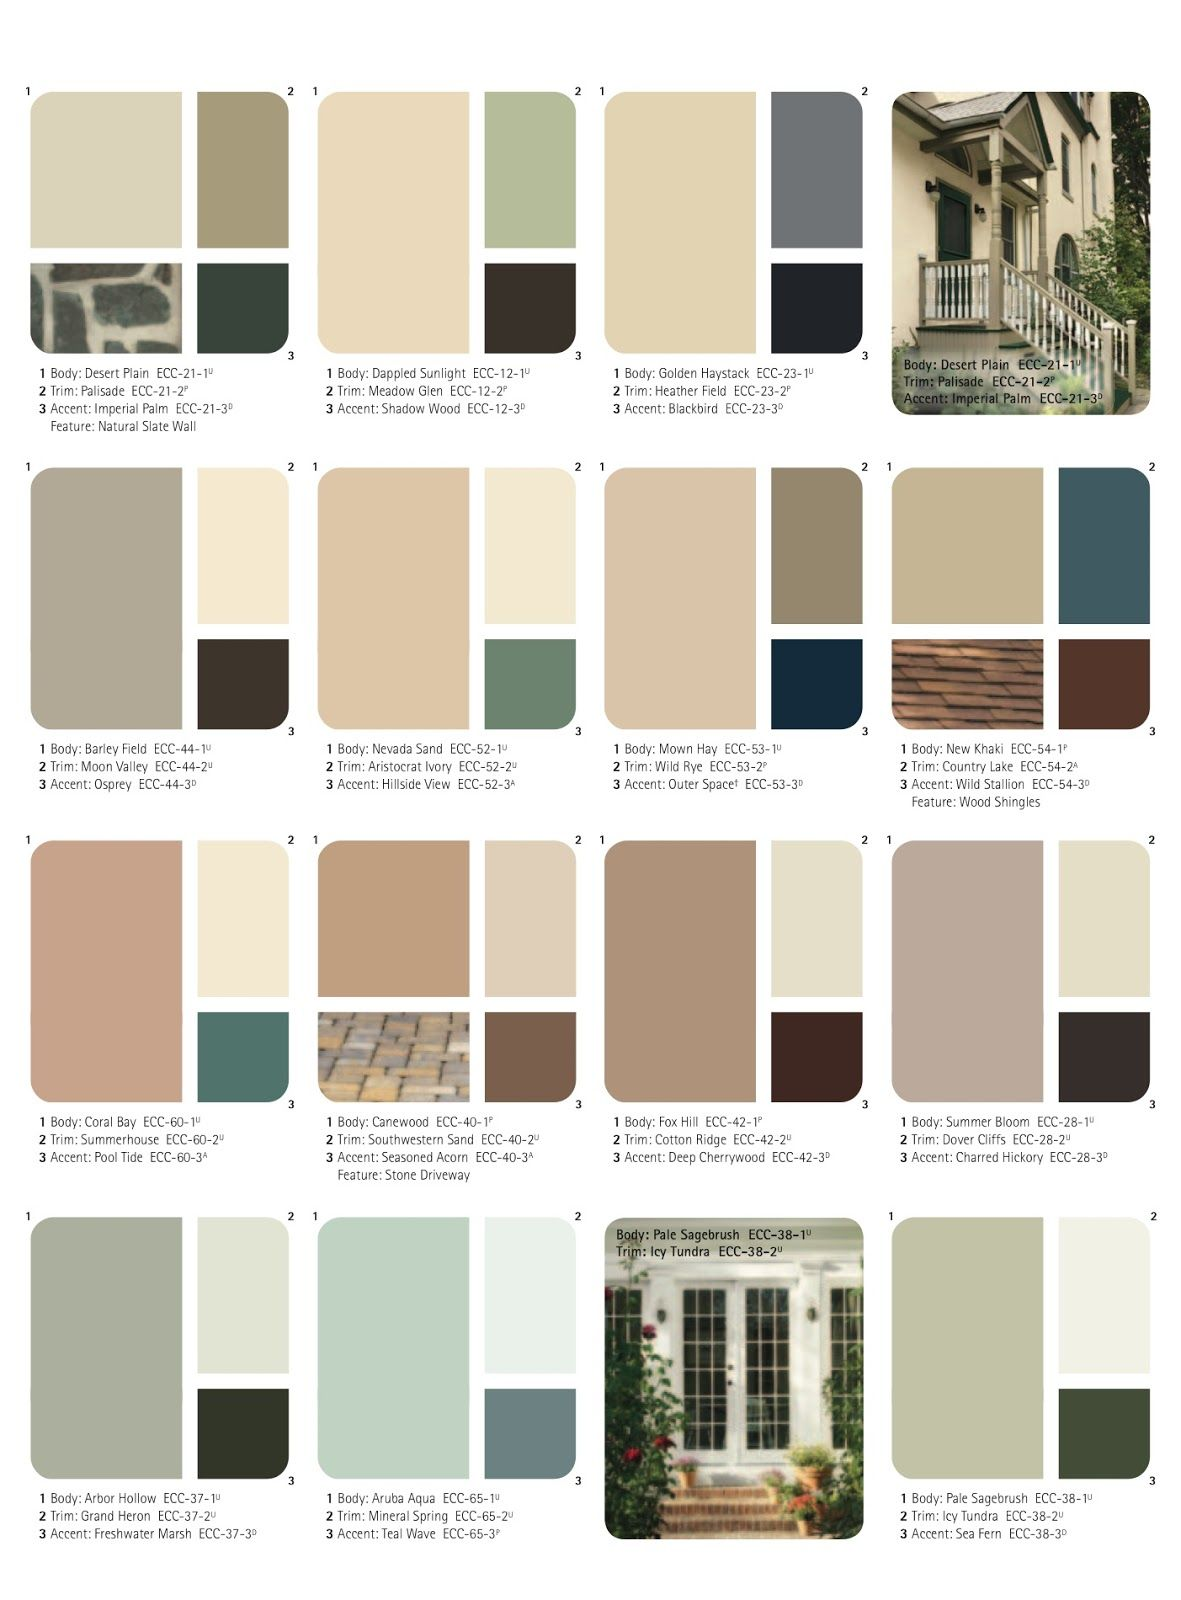 Home Depot Exterior Paint Endearing Set Of Beautiful Natural Colors Ange's Dollhouse Choosing The . 2017